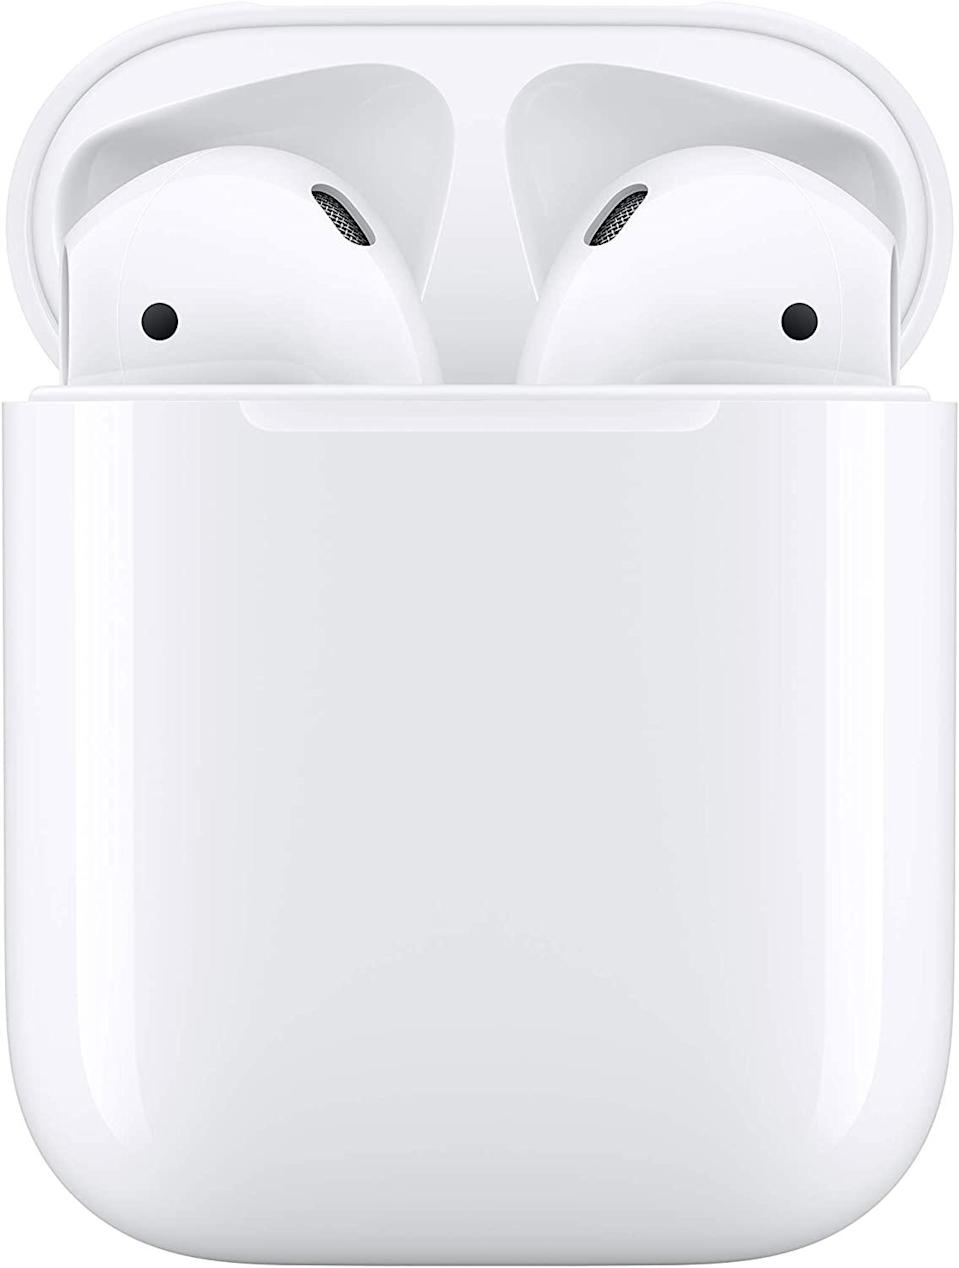 """<br><br><strong>Apple</strong> AirPods with Charging Case, $, available at <a href=""""https://amzn.to/33VIy7X"""" rel=""""nofollow noopener"""" target=""""_blank"""" data-ylk=""""slk:Amazon"""" class=""""link rapid-noclick-resp"""">Amazon</a>"""